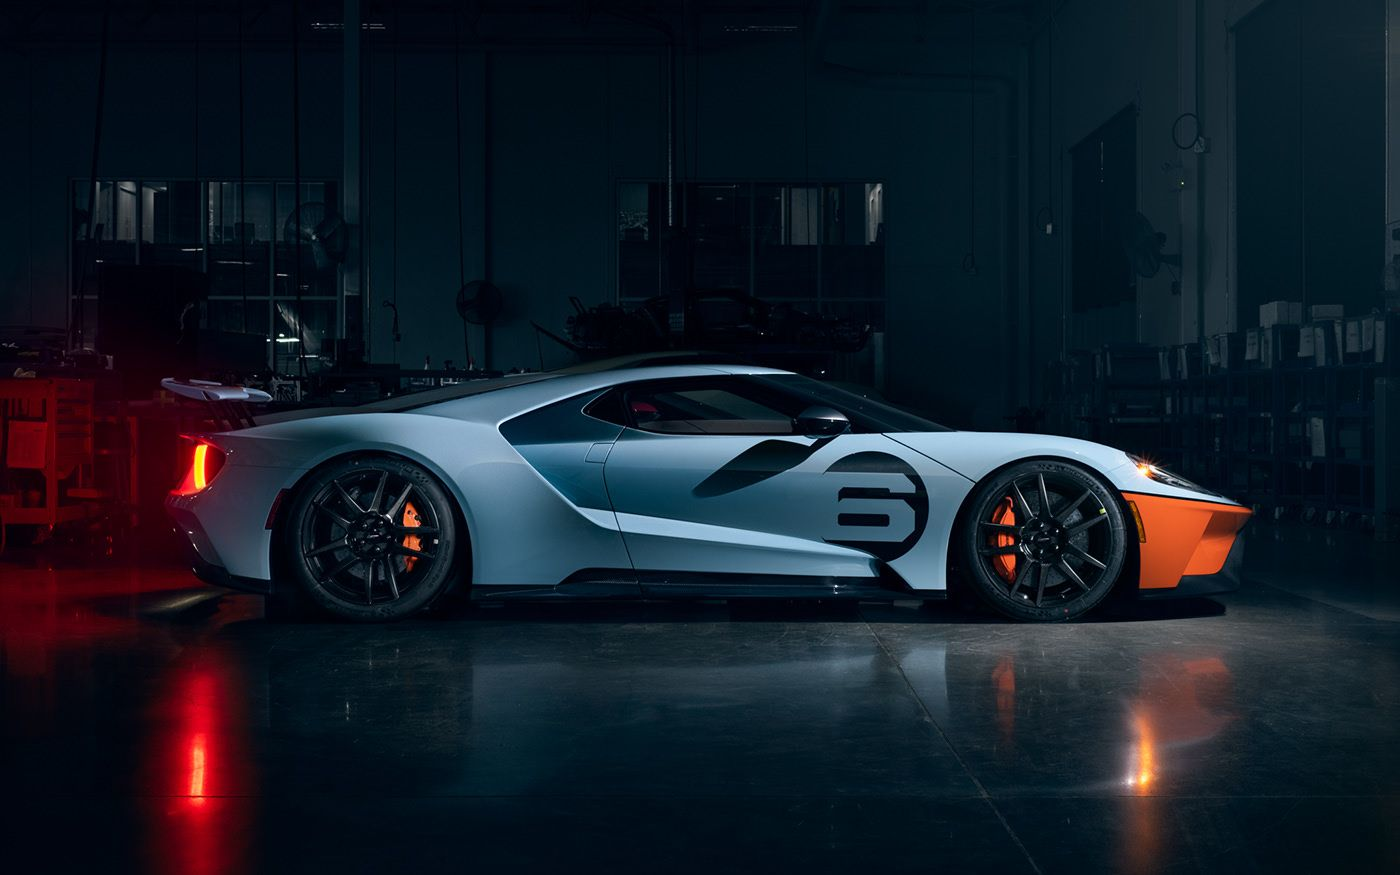 2020 Ford Gt Launch Campaign On Behance V 2020 G Superkary Ford